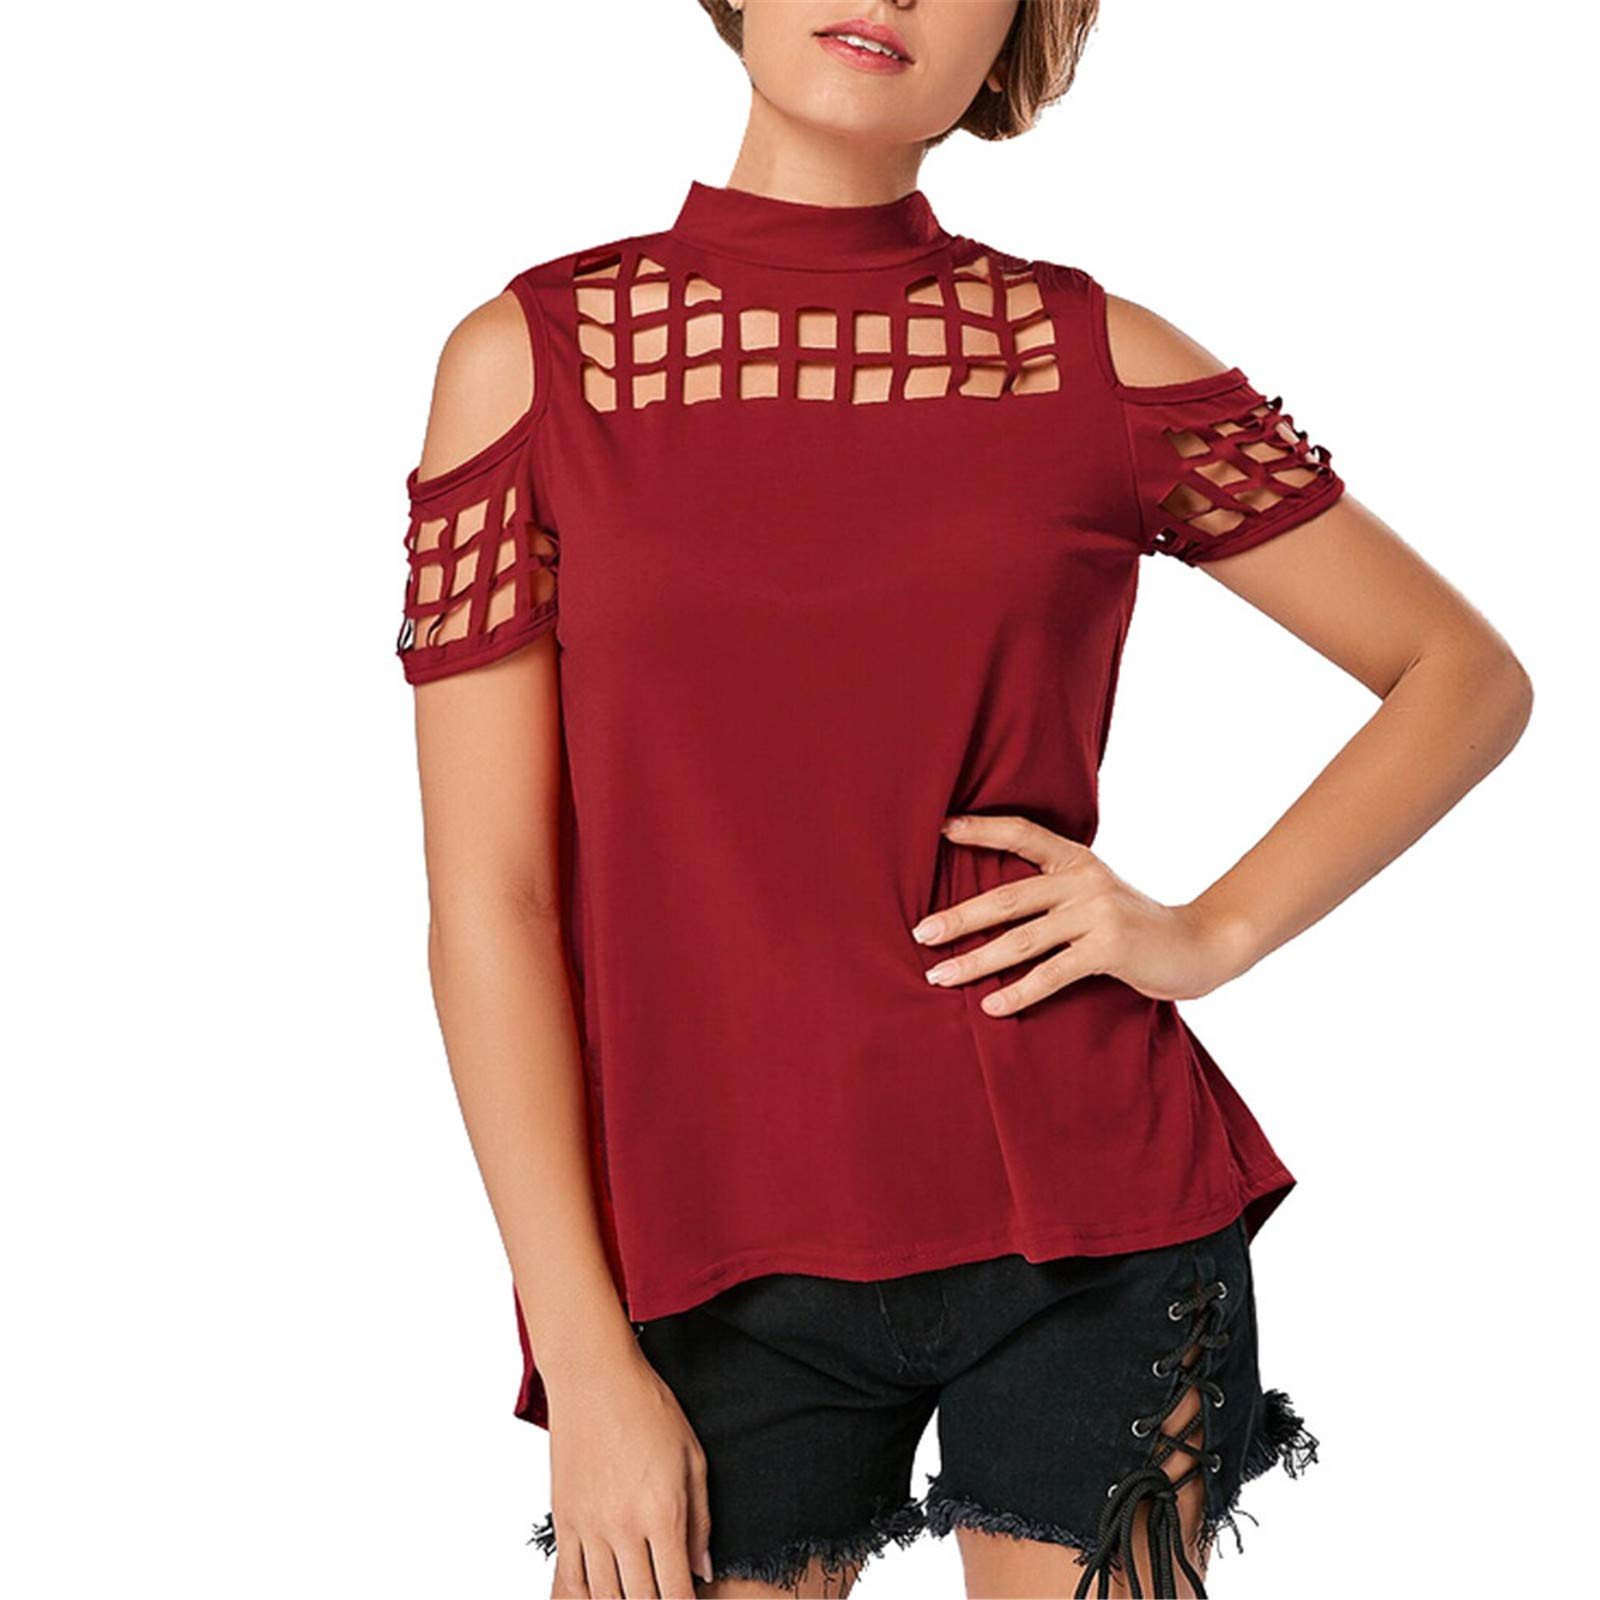 Womens Tops,wodceeke Casual Summer T-Shirt Cold Shoulder Hollow Out Tees Short Sleeve Slit Tunic Tops Blouse (Red,S)